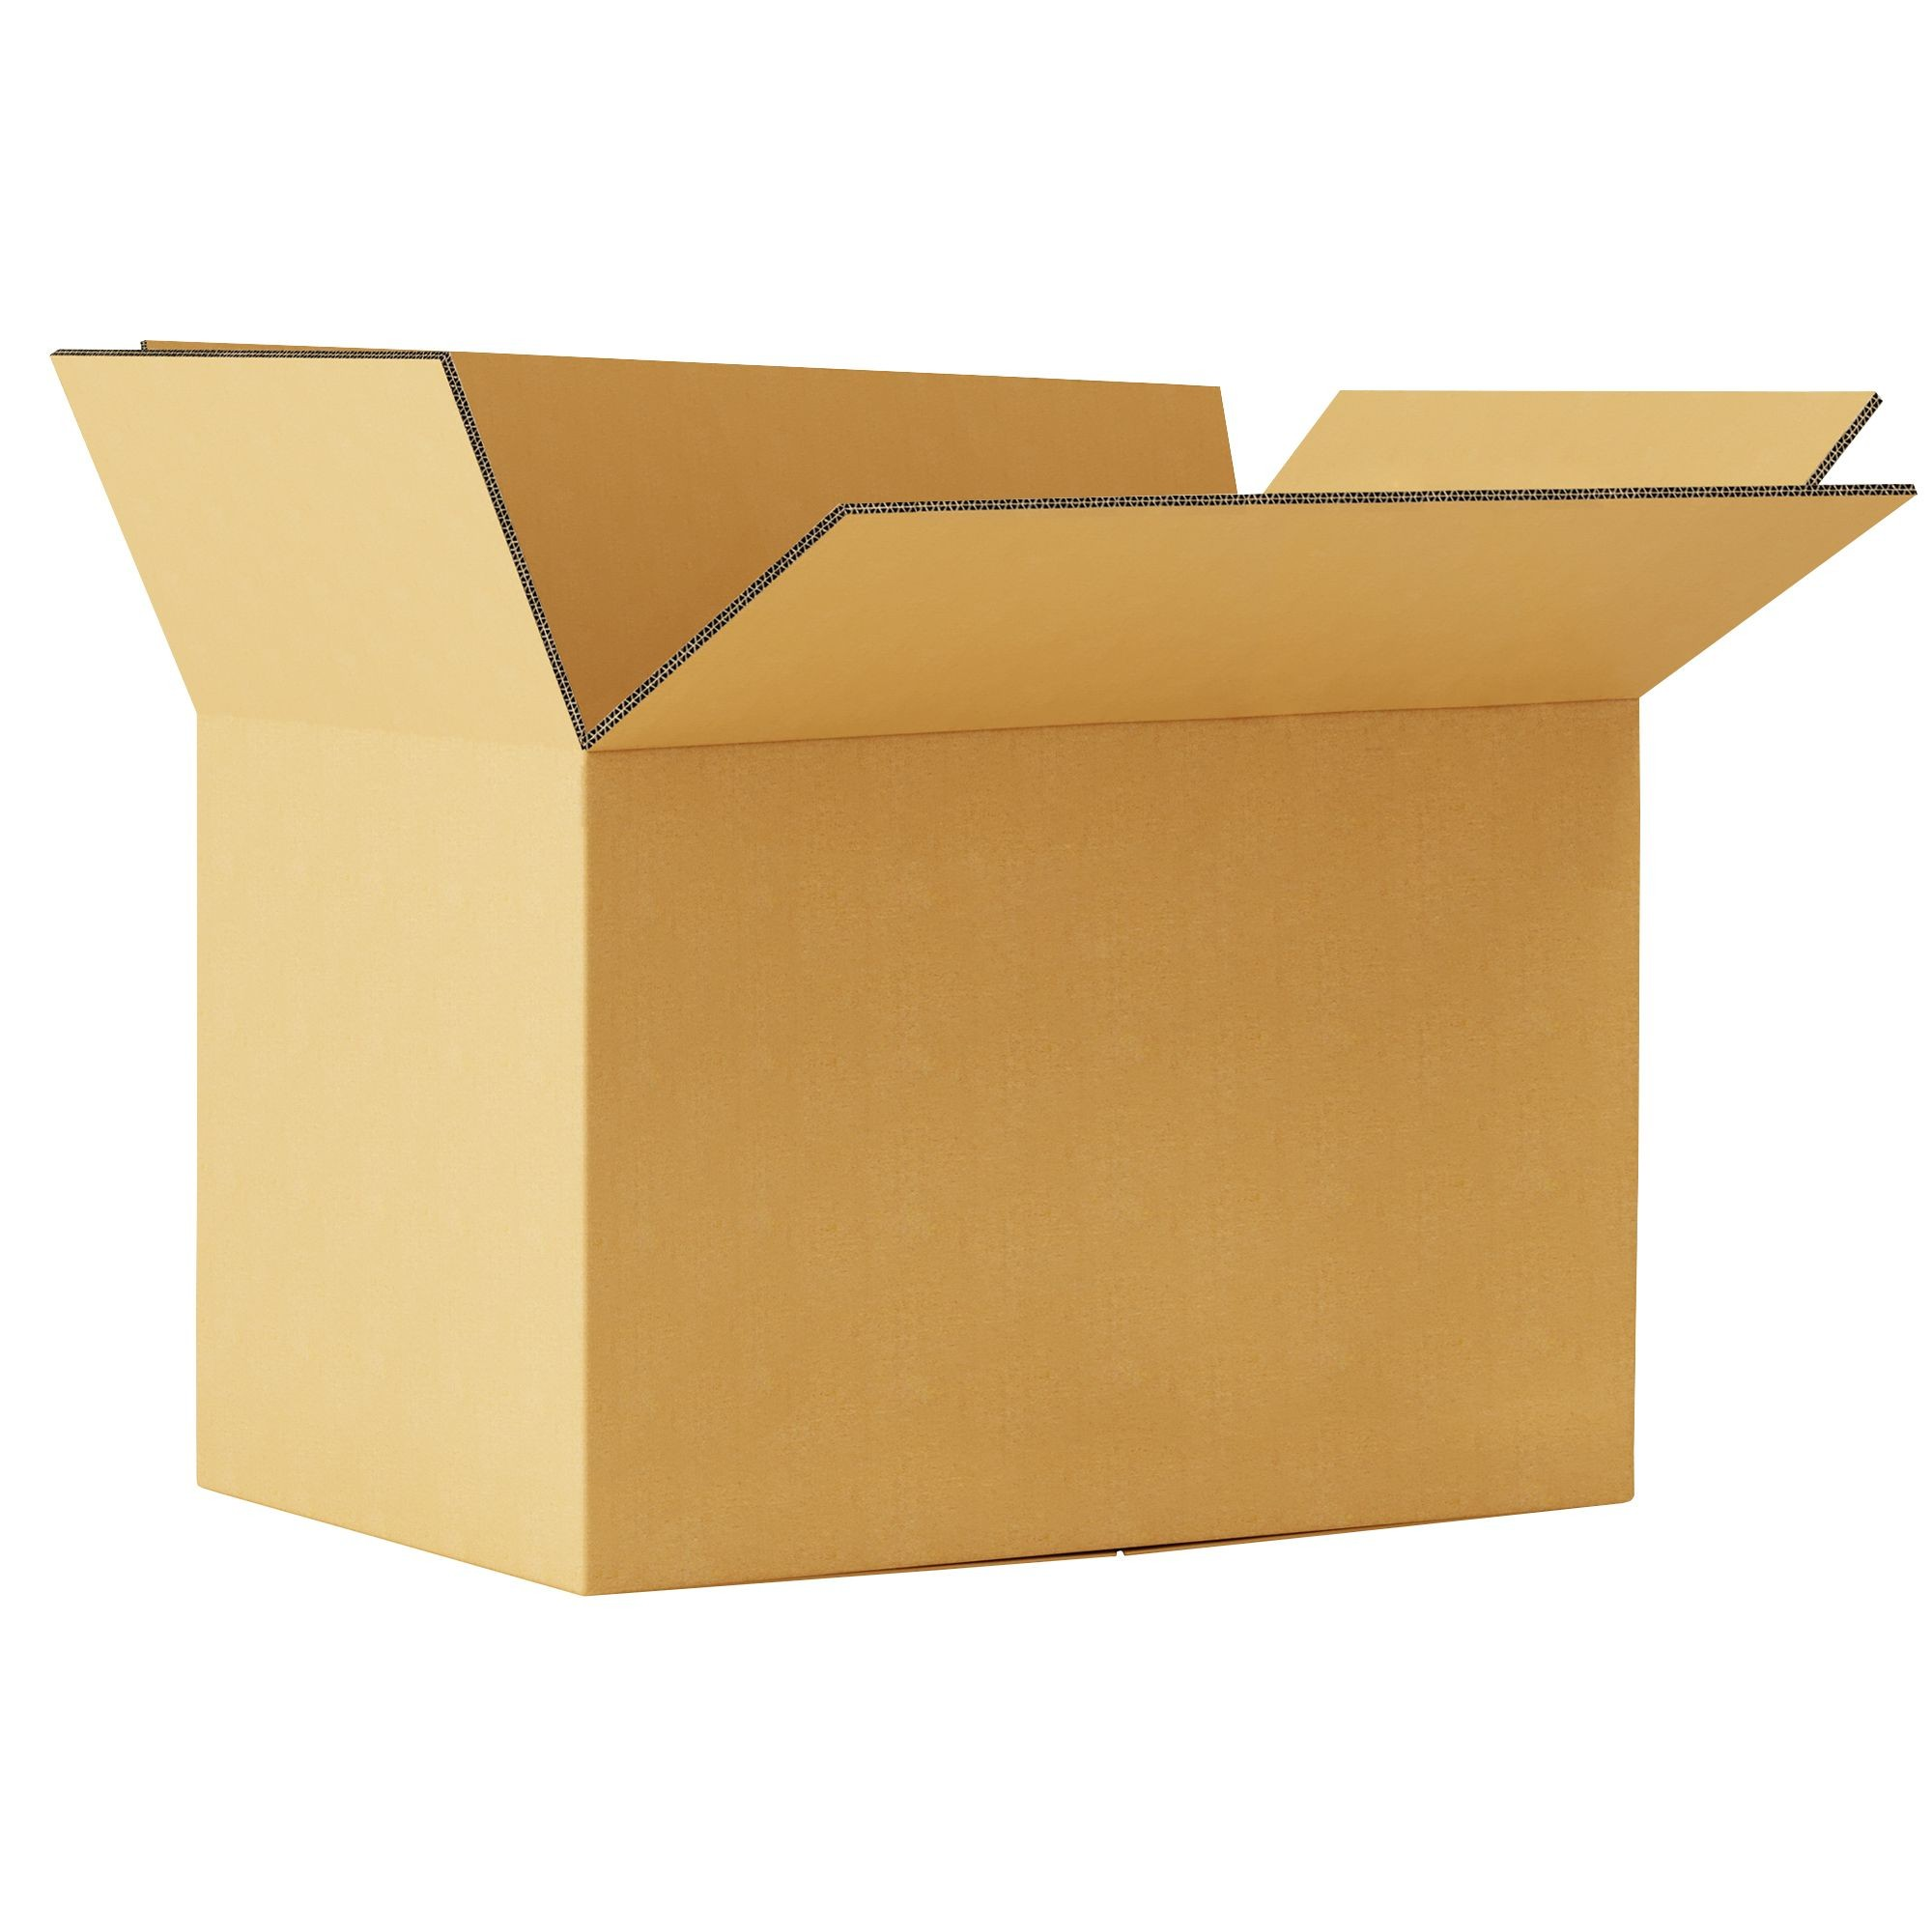 """TOTALPACK® 18 x 12 x 12"""" Double Wall Corrugated """"Printed Fragile This Side Up"""" Boxes 20 Units"""